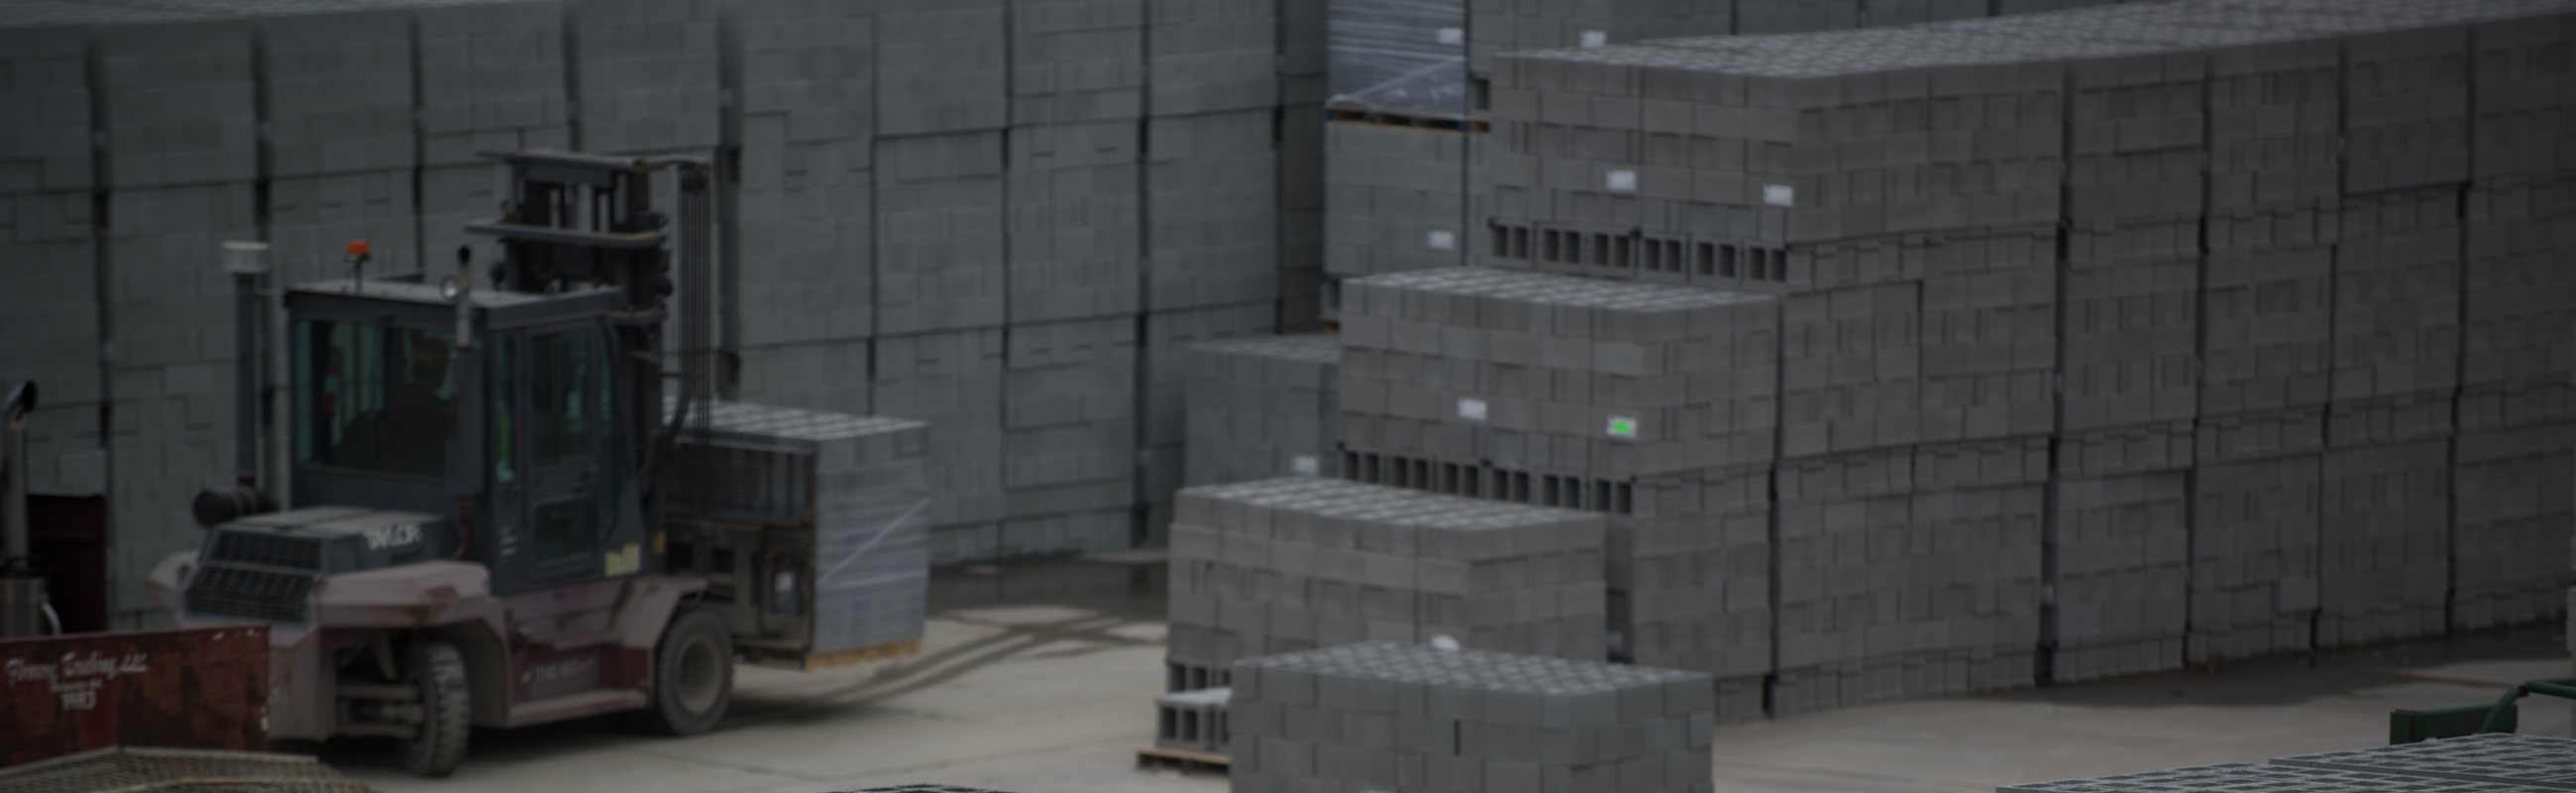 Building products forklift brick blocks